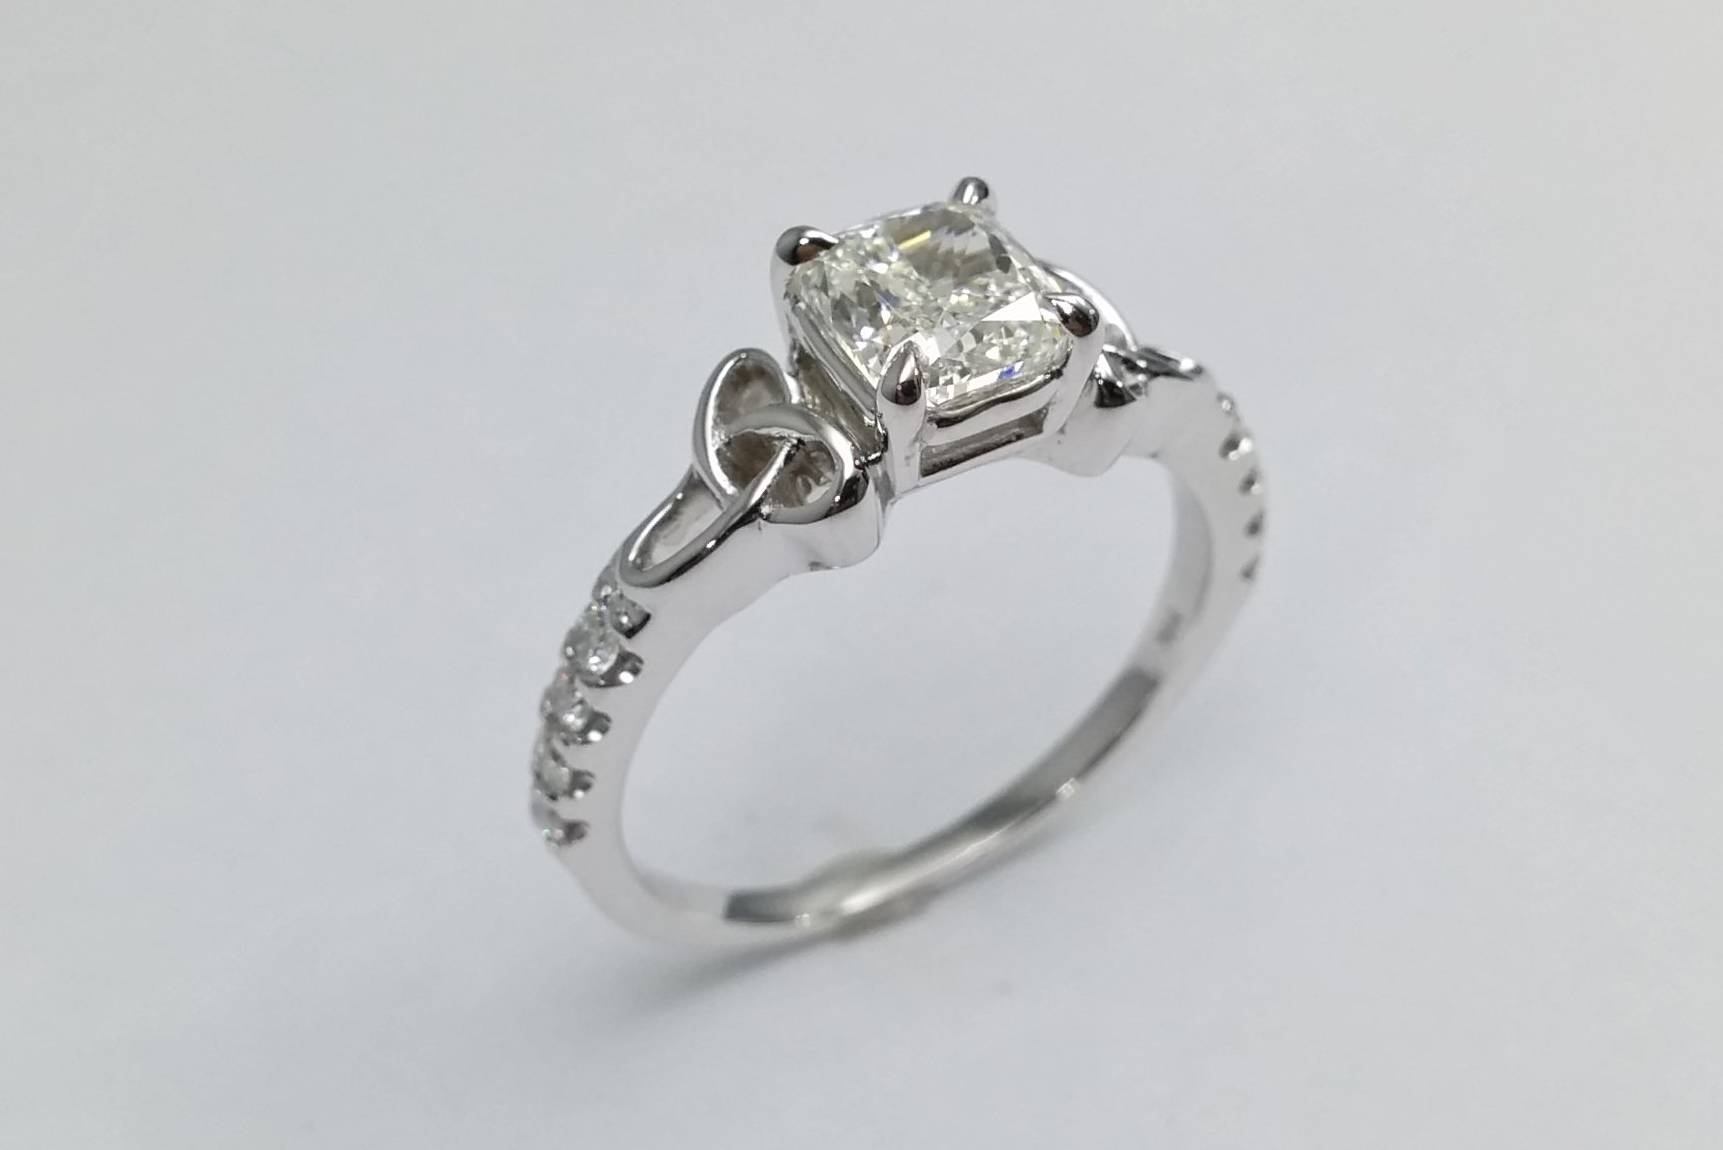 Celtic – Engagement Rings From Mdc Diamonds Nyc With Regard To Silver Celtic Engagement Rings (View 2 of 15)